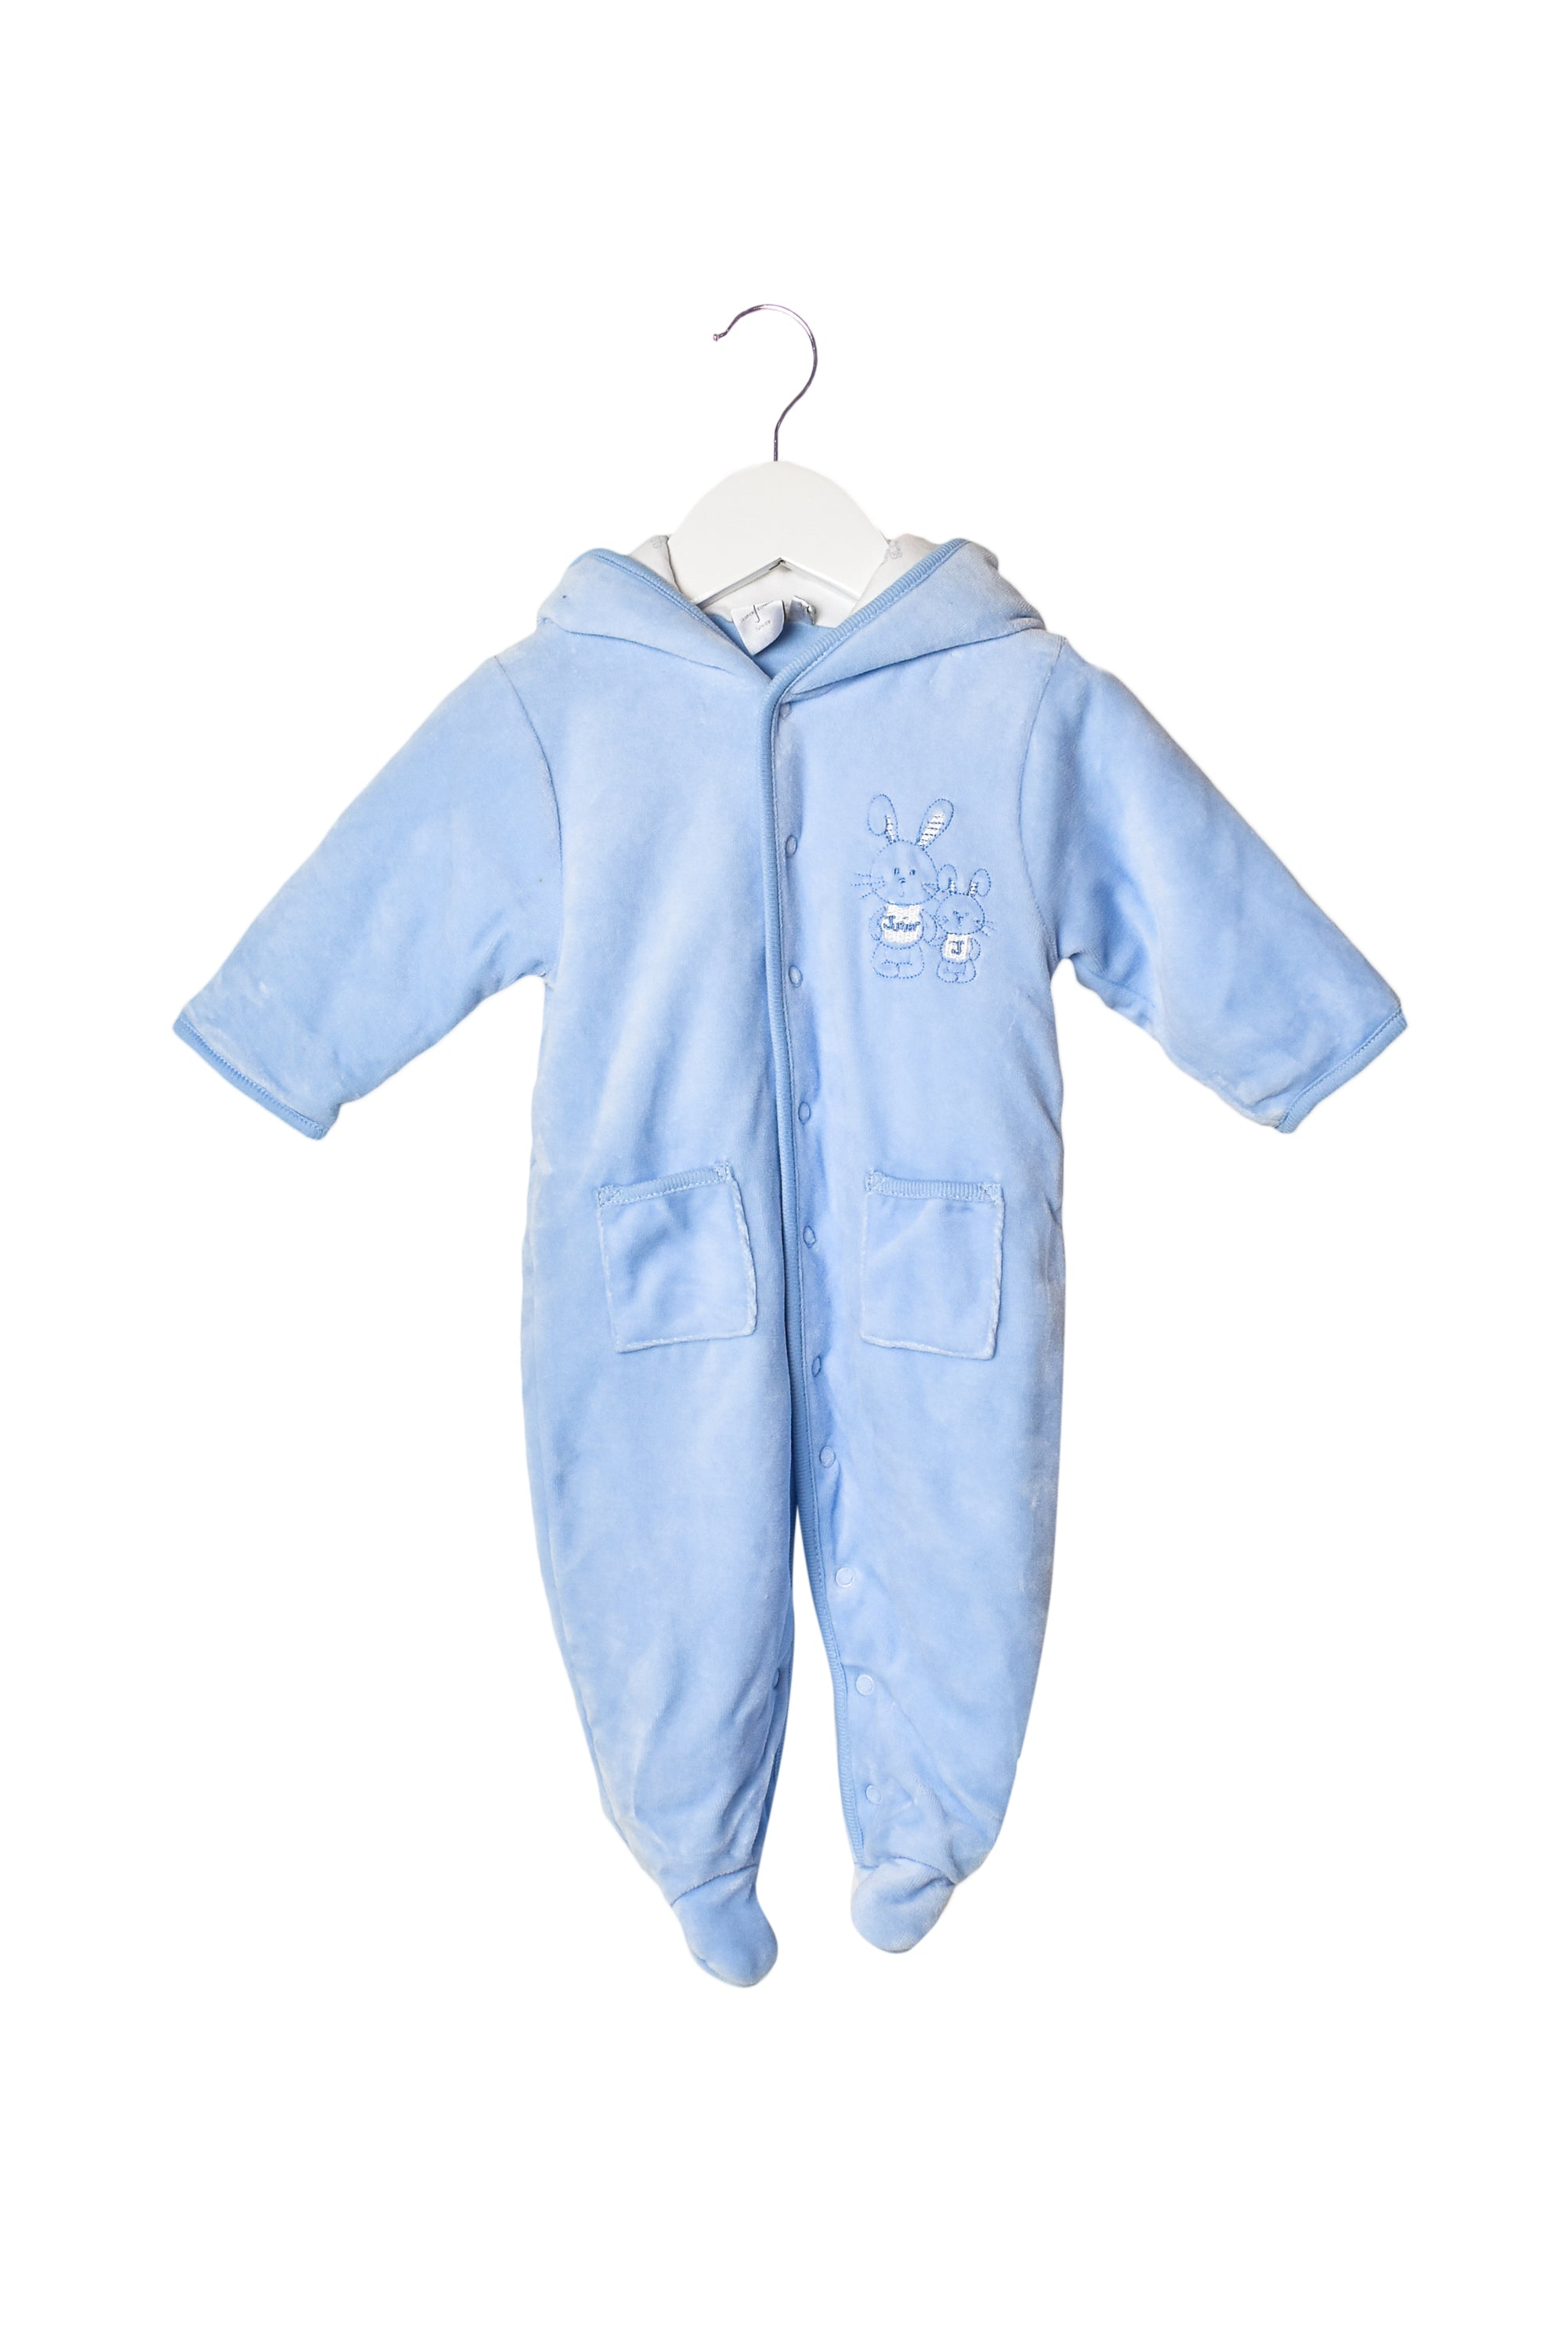 10007746 J by Jasper Conran Baby~ Bodysuit 3-6M at Retykle